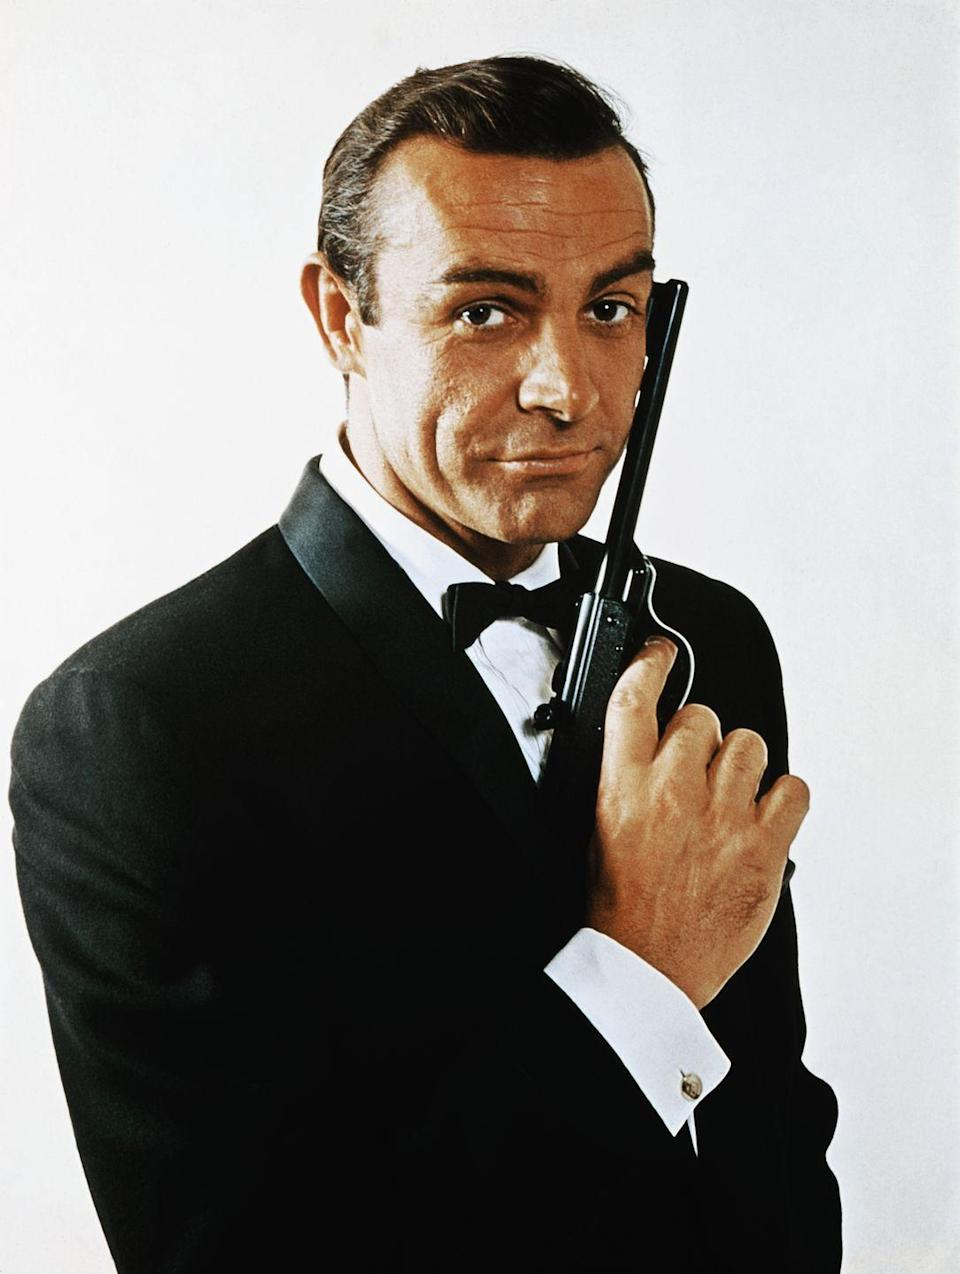 "<p>He created the mold for Bond and, for many fans, will always be the quintessential 007. What Connery gave Bond, more than anything else, was the cool factor. He was suave and quick with a dry one-liner. (""It just so happens that I like conch chowder,"" which Connery purrs in <em>Thunderball</em>, will forever be my favorite Bond line.) It's this aspect of the character that makes the Connery films rewatchable all these years later. </p><p><strong>Standout Film(s):</strong> <em>Goldfinger </em>and <em>Thunderball</em></p>"